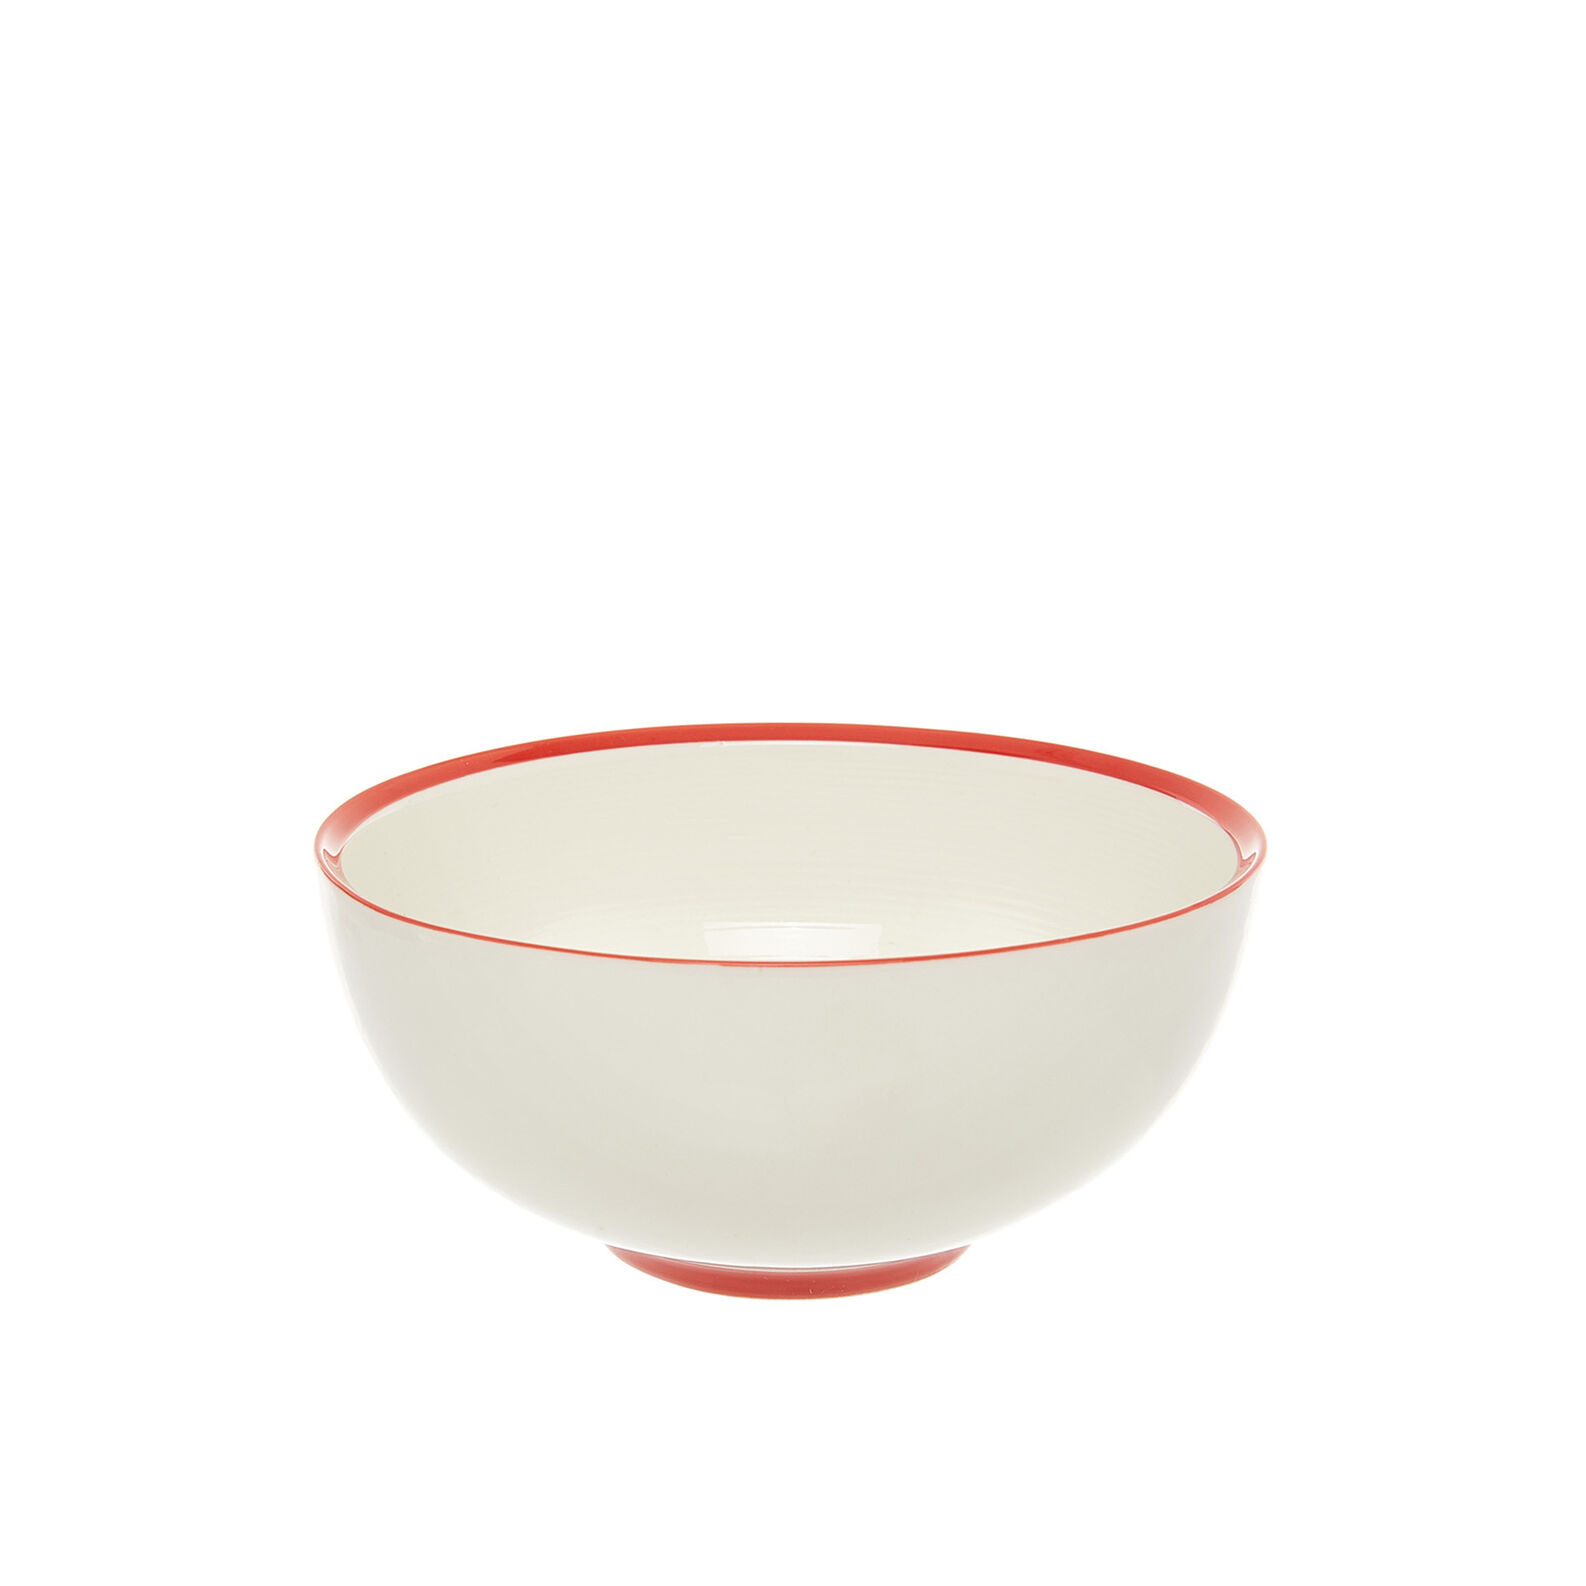 Bowl in new bone China with red stripe